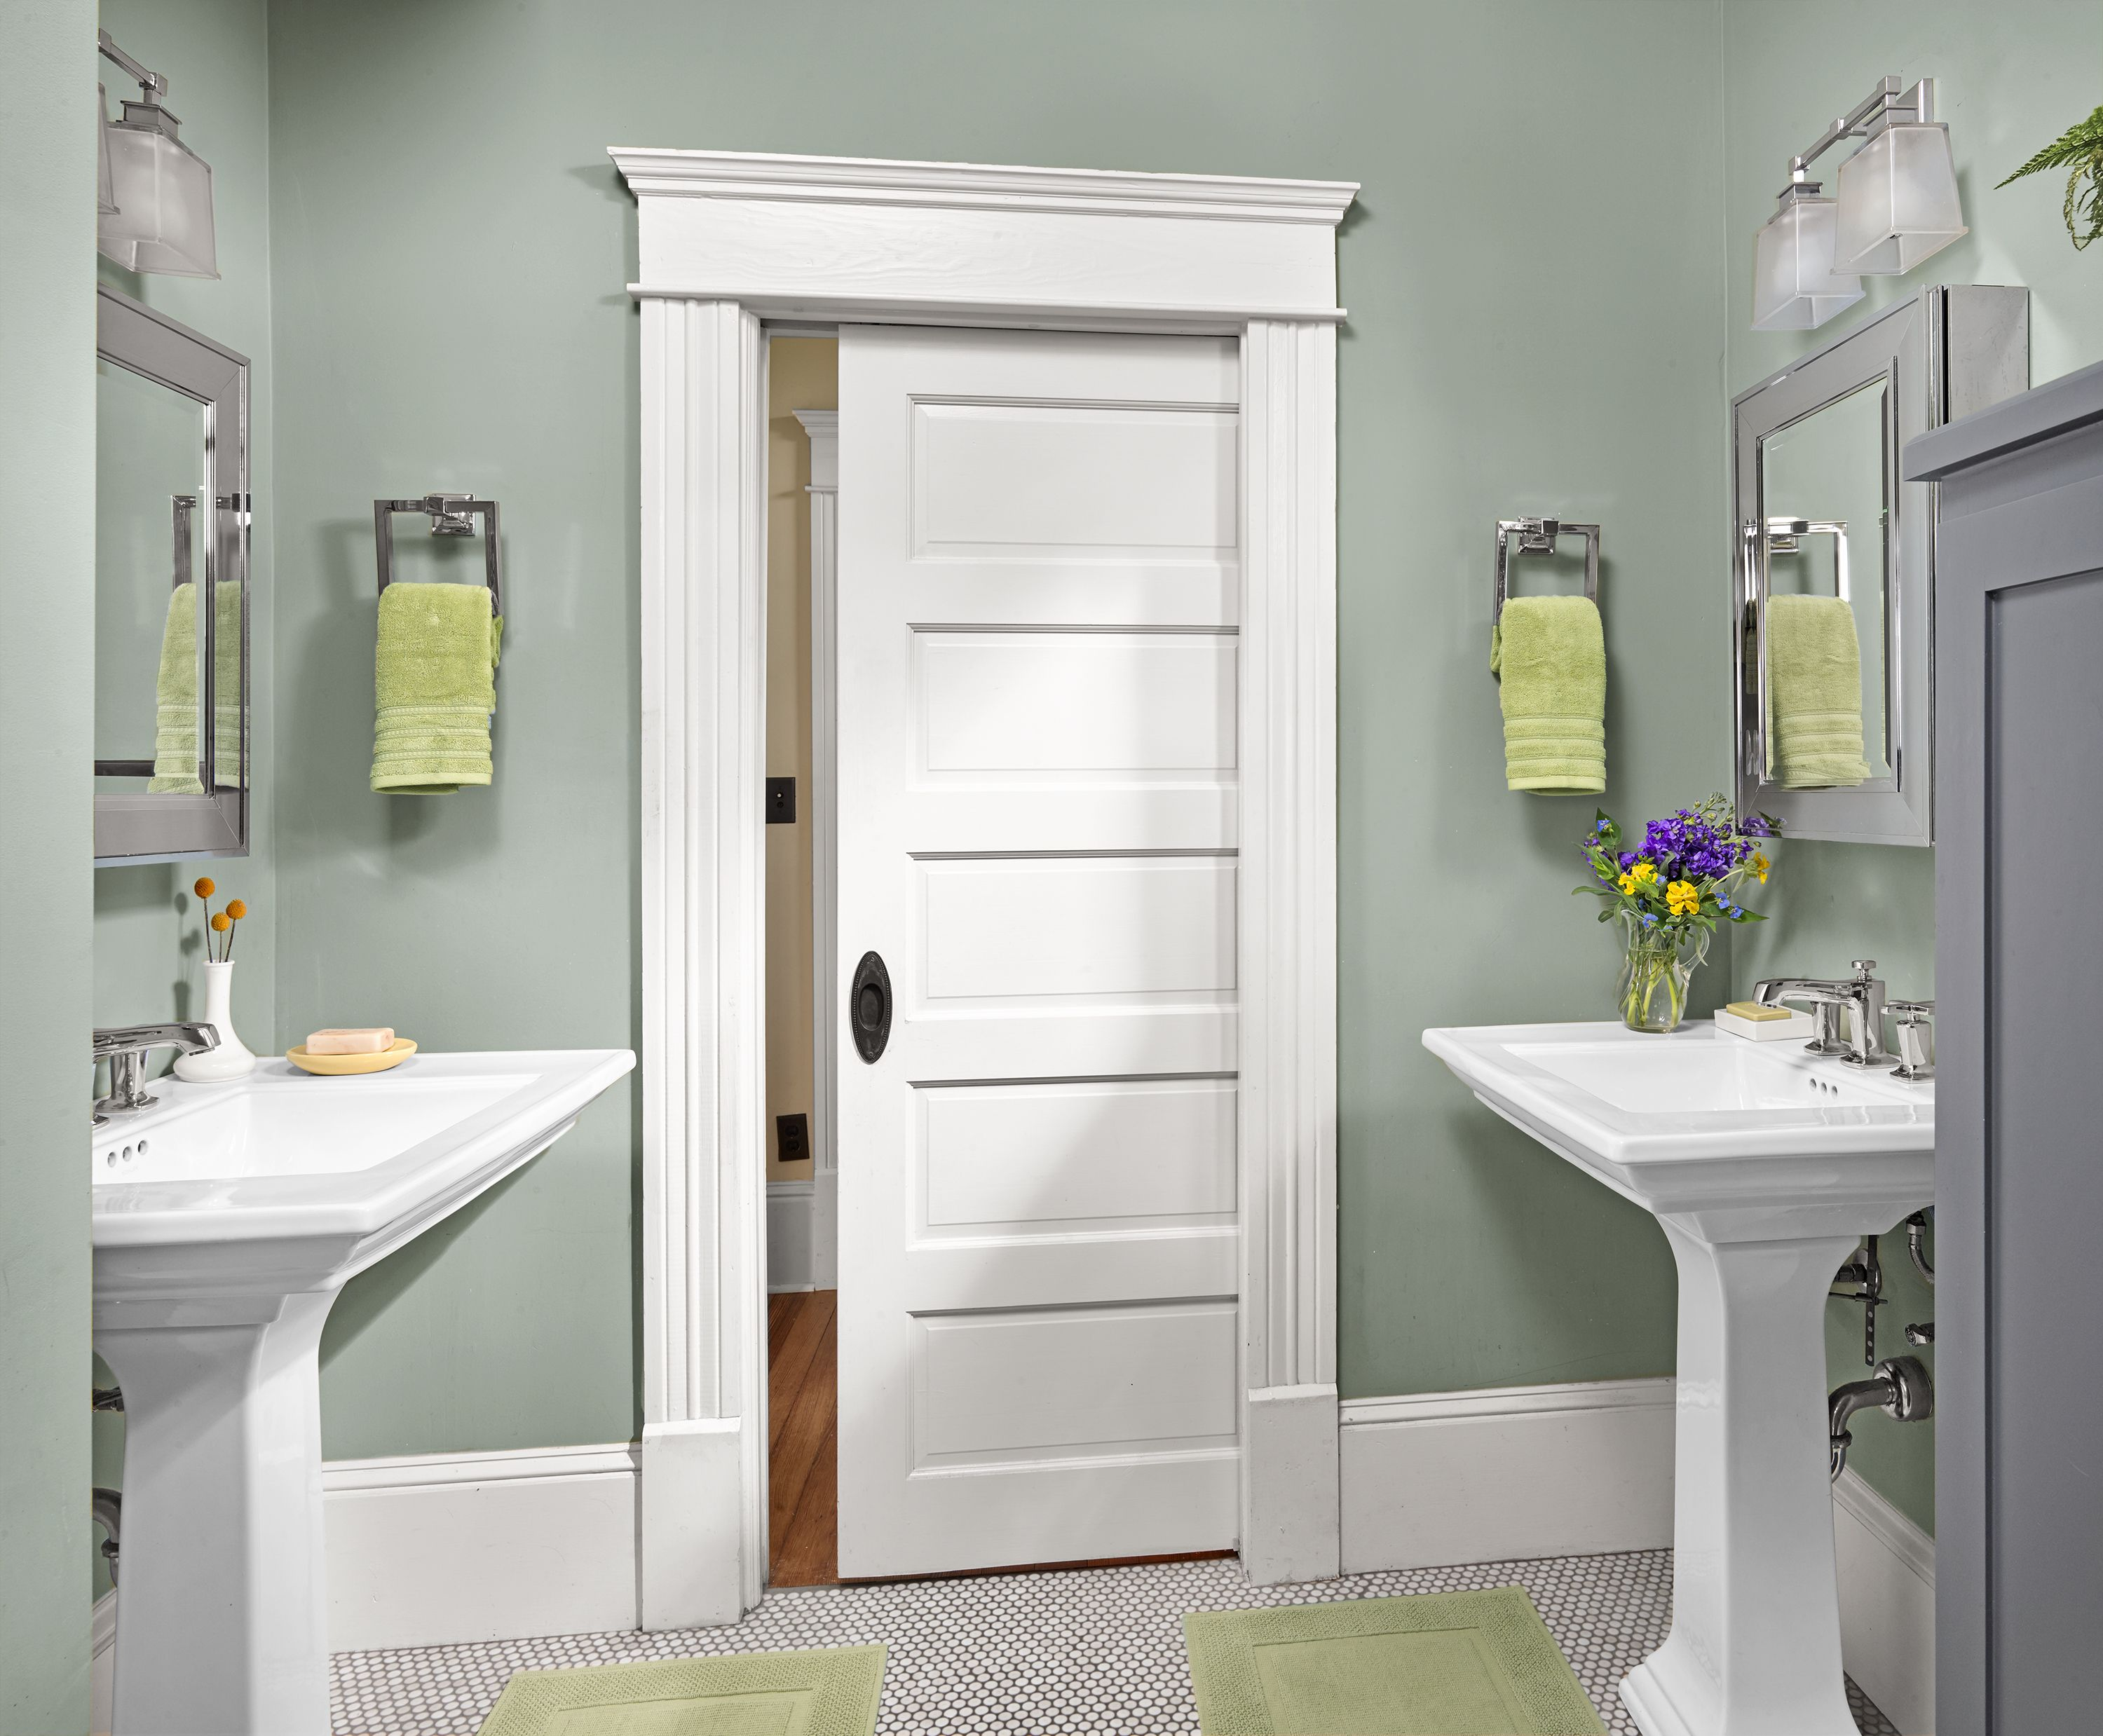 Adding A Wet Room Shower Space To A Master Suite